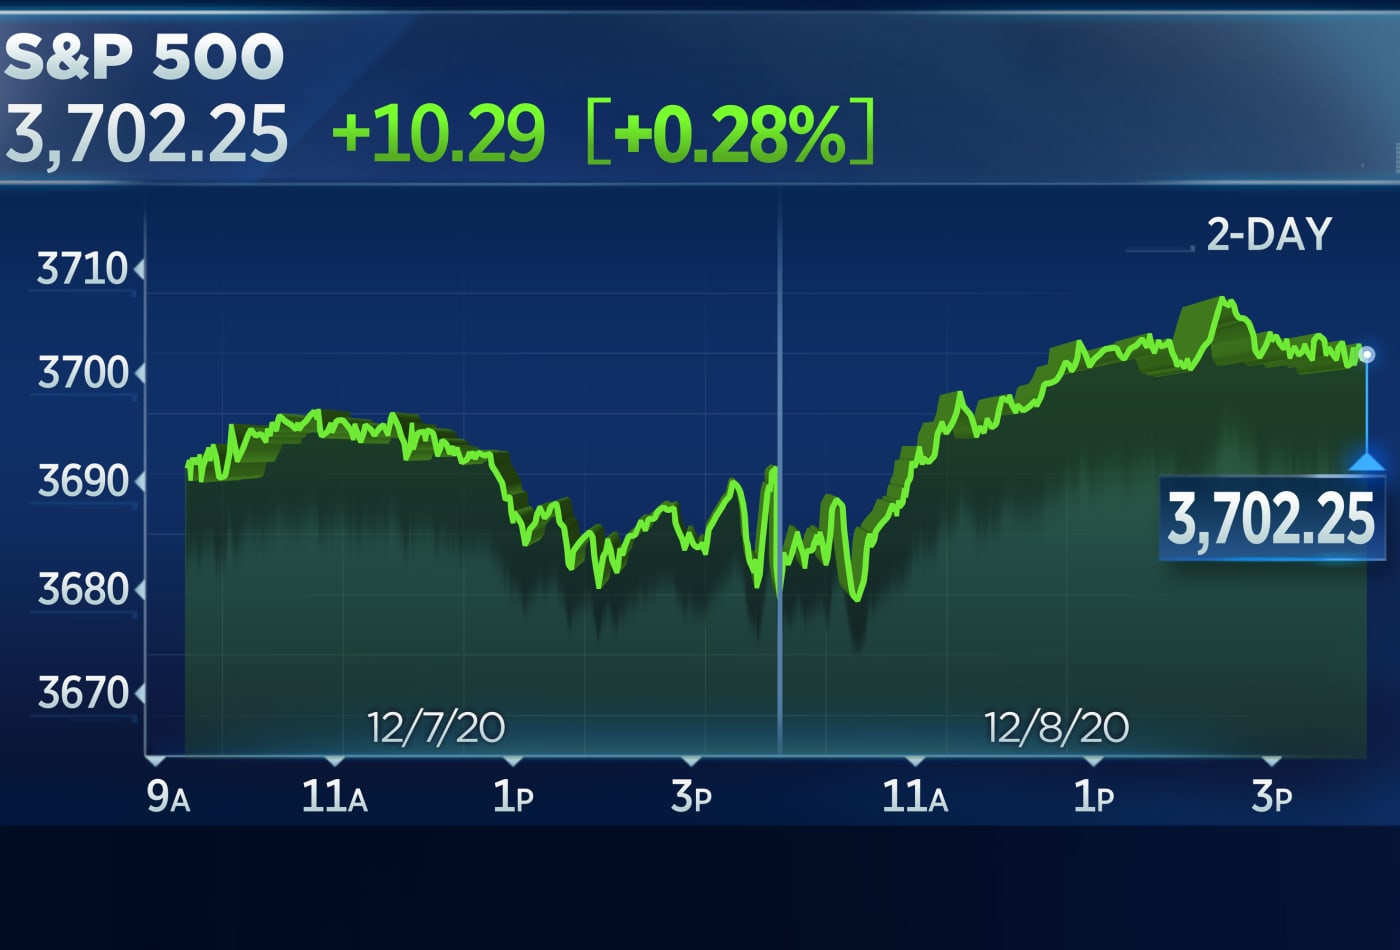 Stocks rise to record highs, S&P 500 closes above 3,700 for the first time